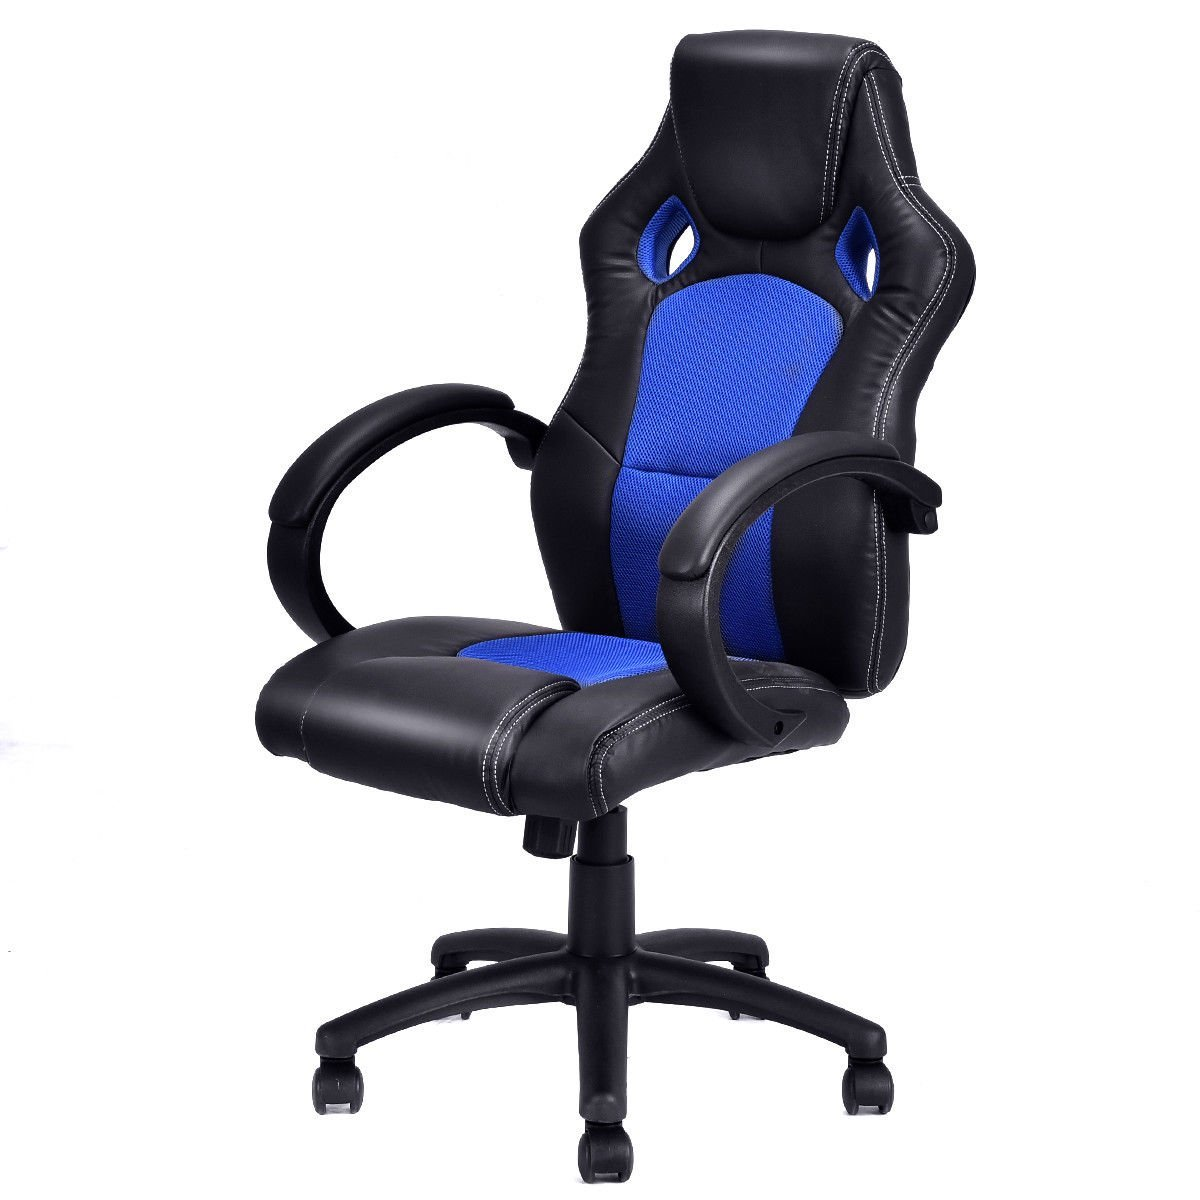 Game Chair With Speakers 10 Cheap Gaming Chairs Under 100 Gaming Chair Pro